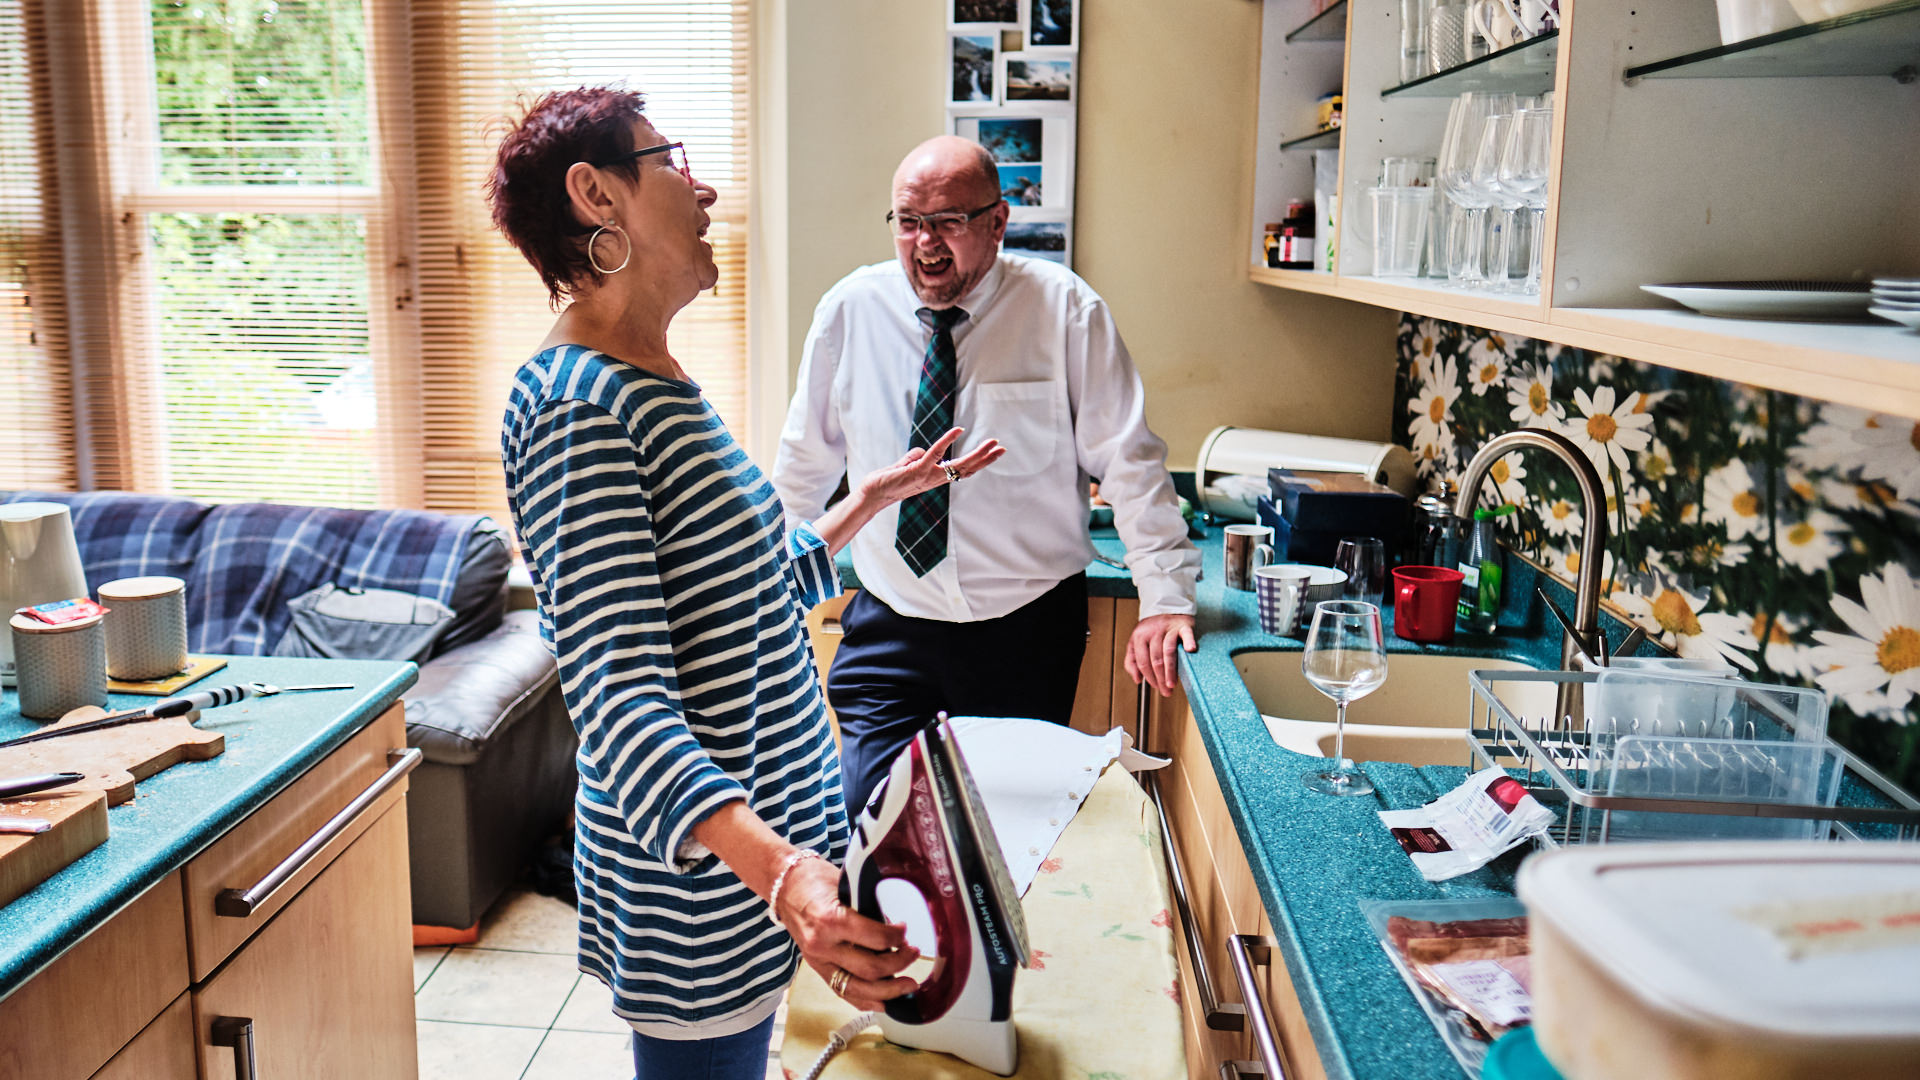 Colour photograph of wedding guests ironing clothes and laughing as they get ready for the wedding day